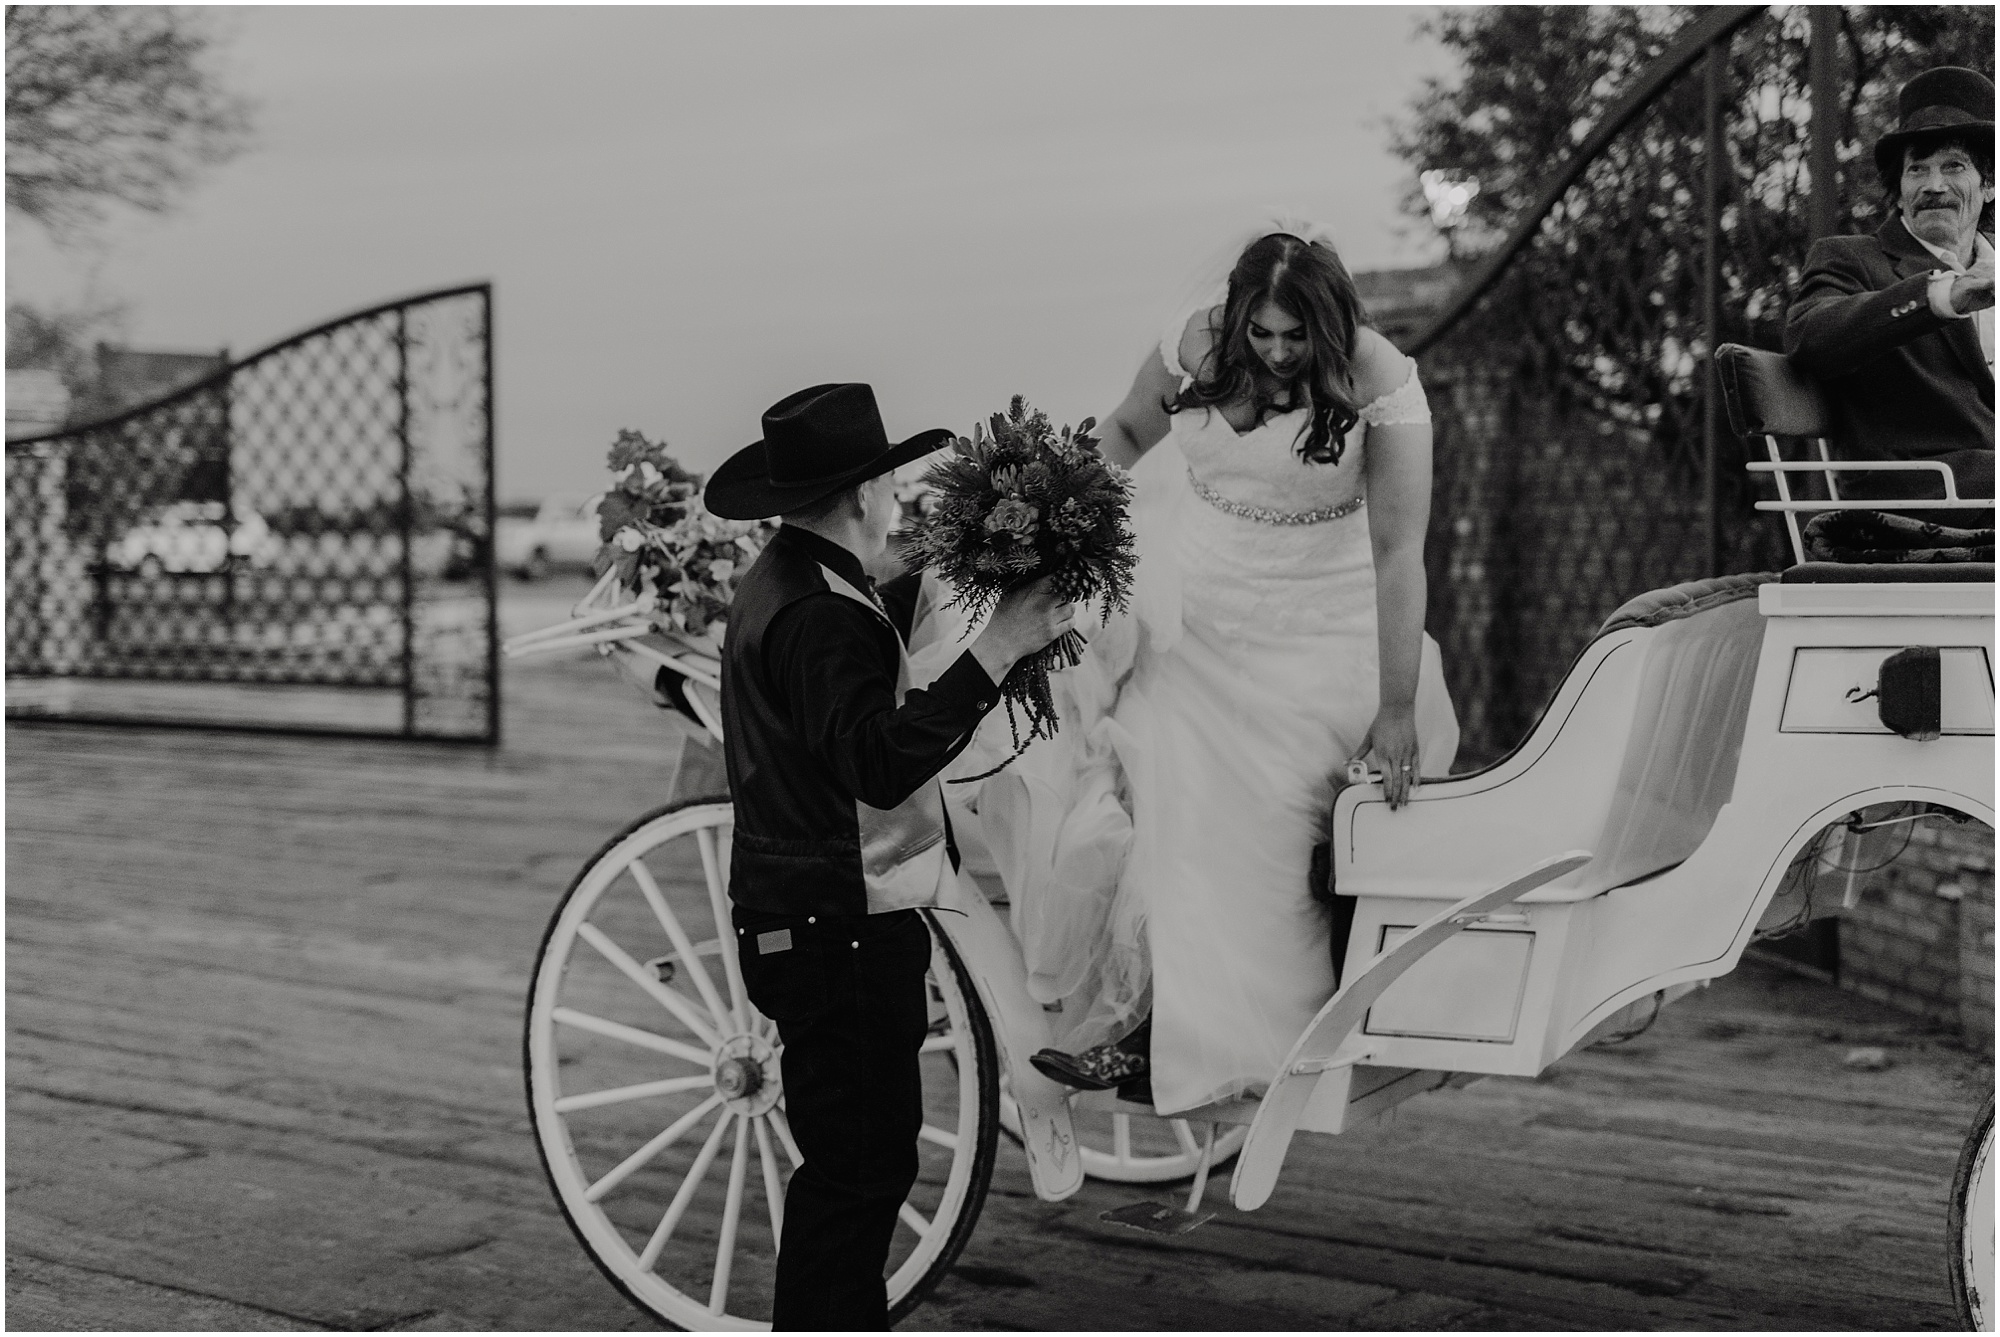 The groom helps his bride out of the horse drawn carriage after their Christmas Country Wedding.